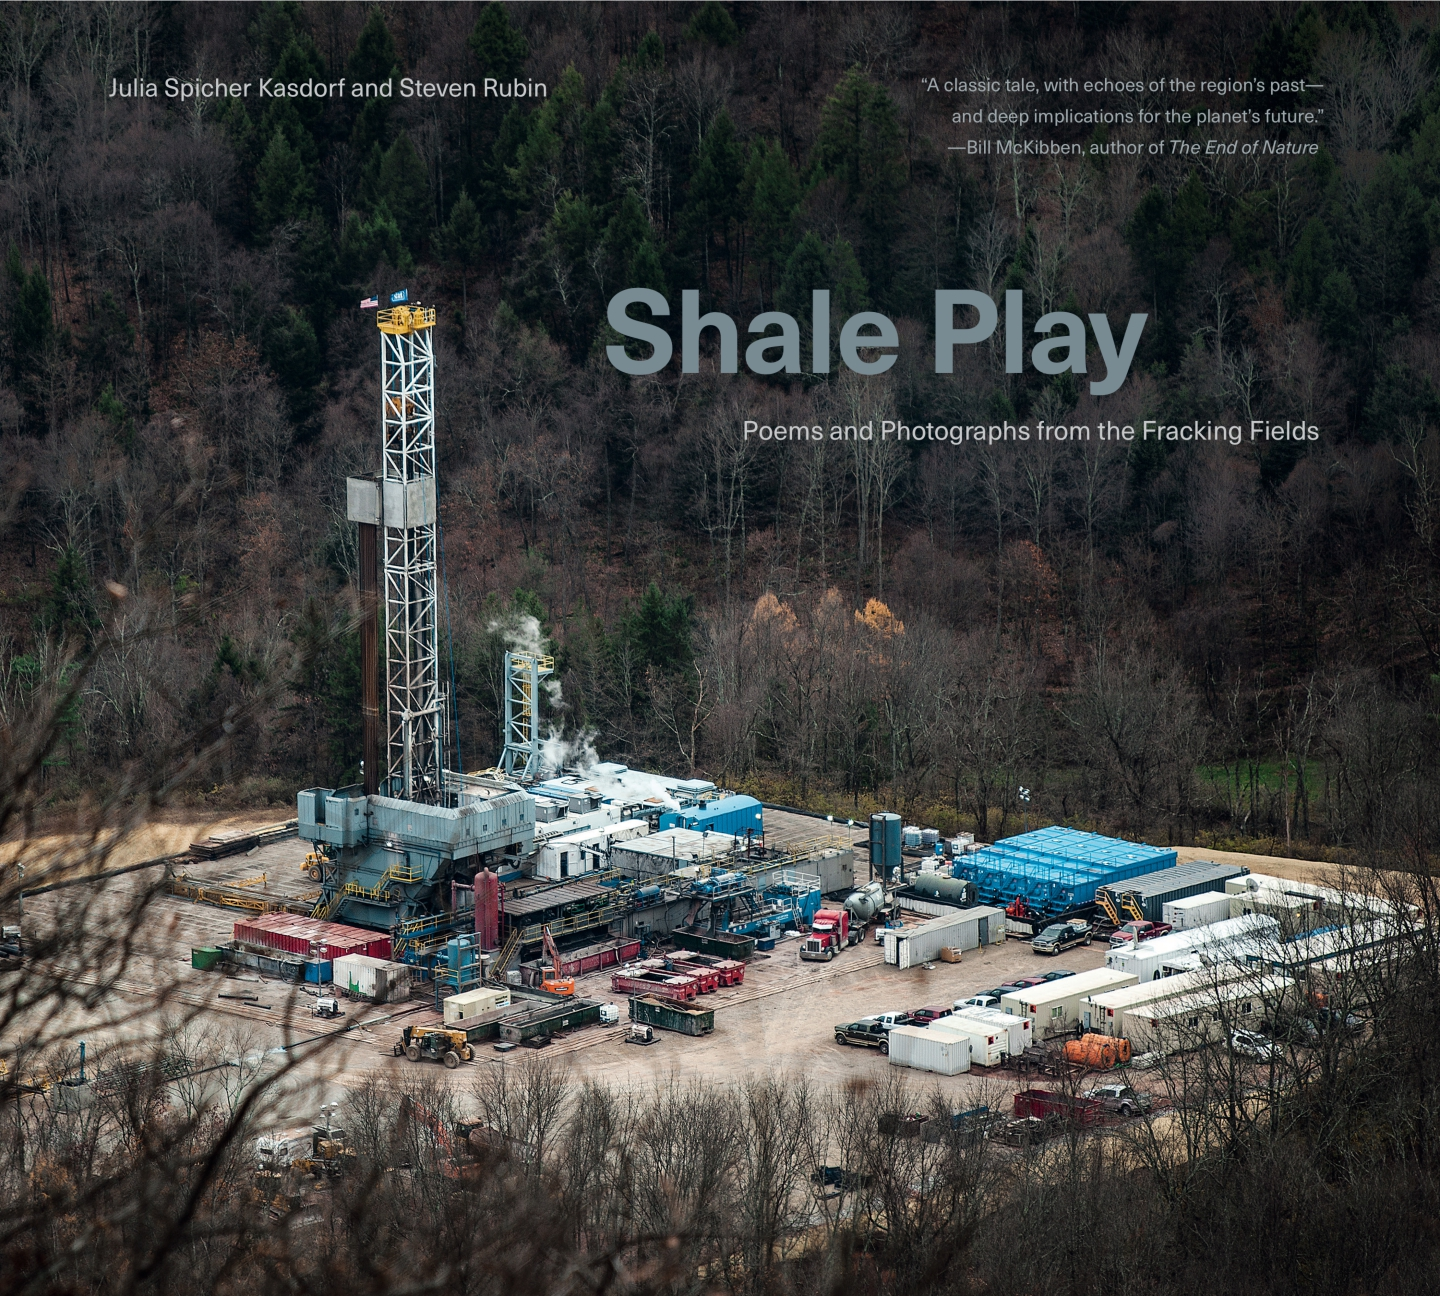 Shale Play: Poems and Photographs from the Fracking Fields